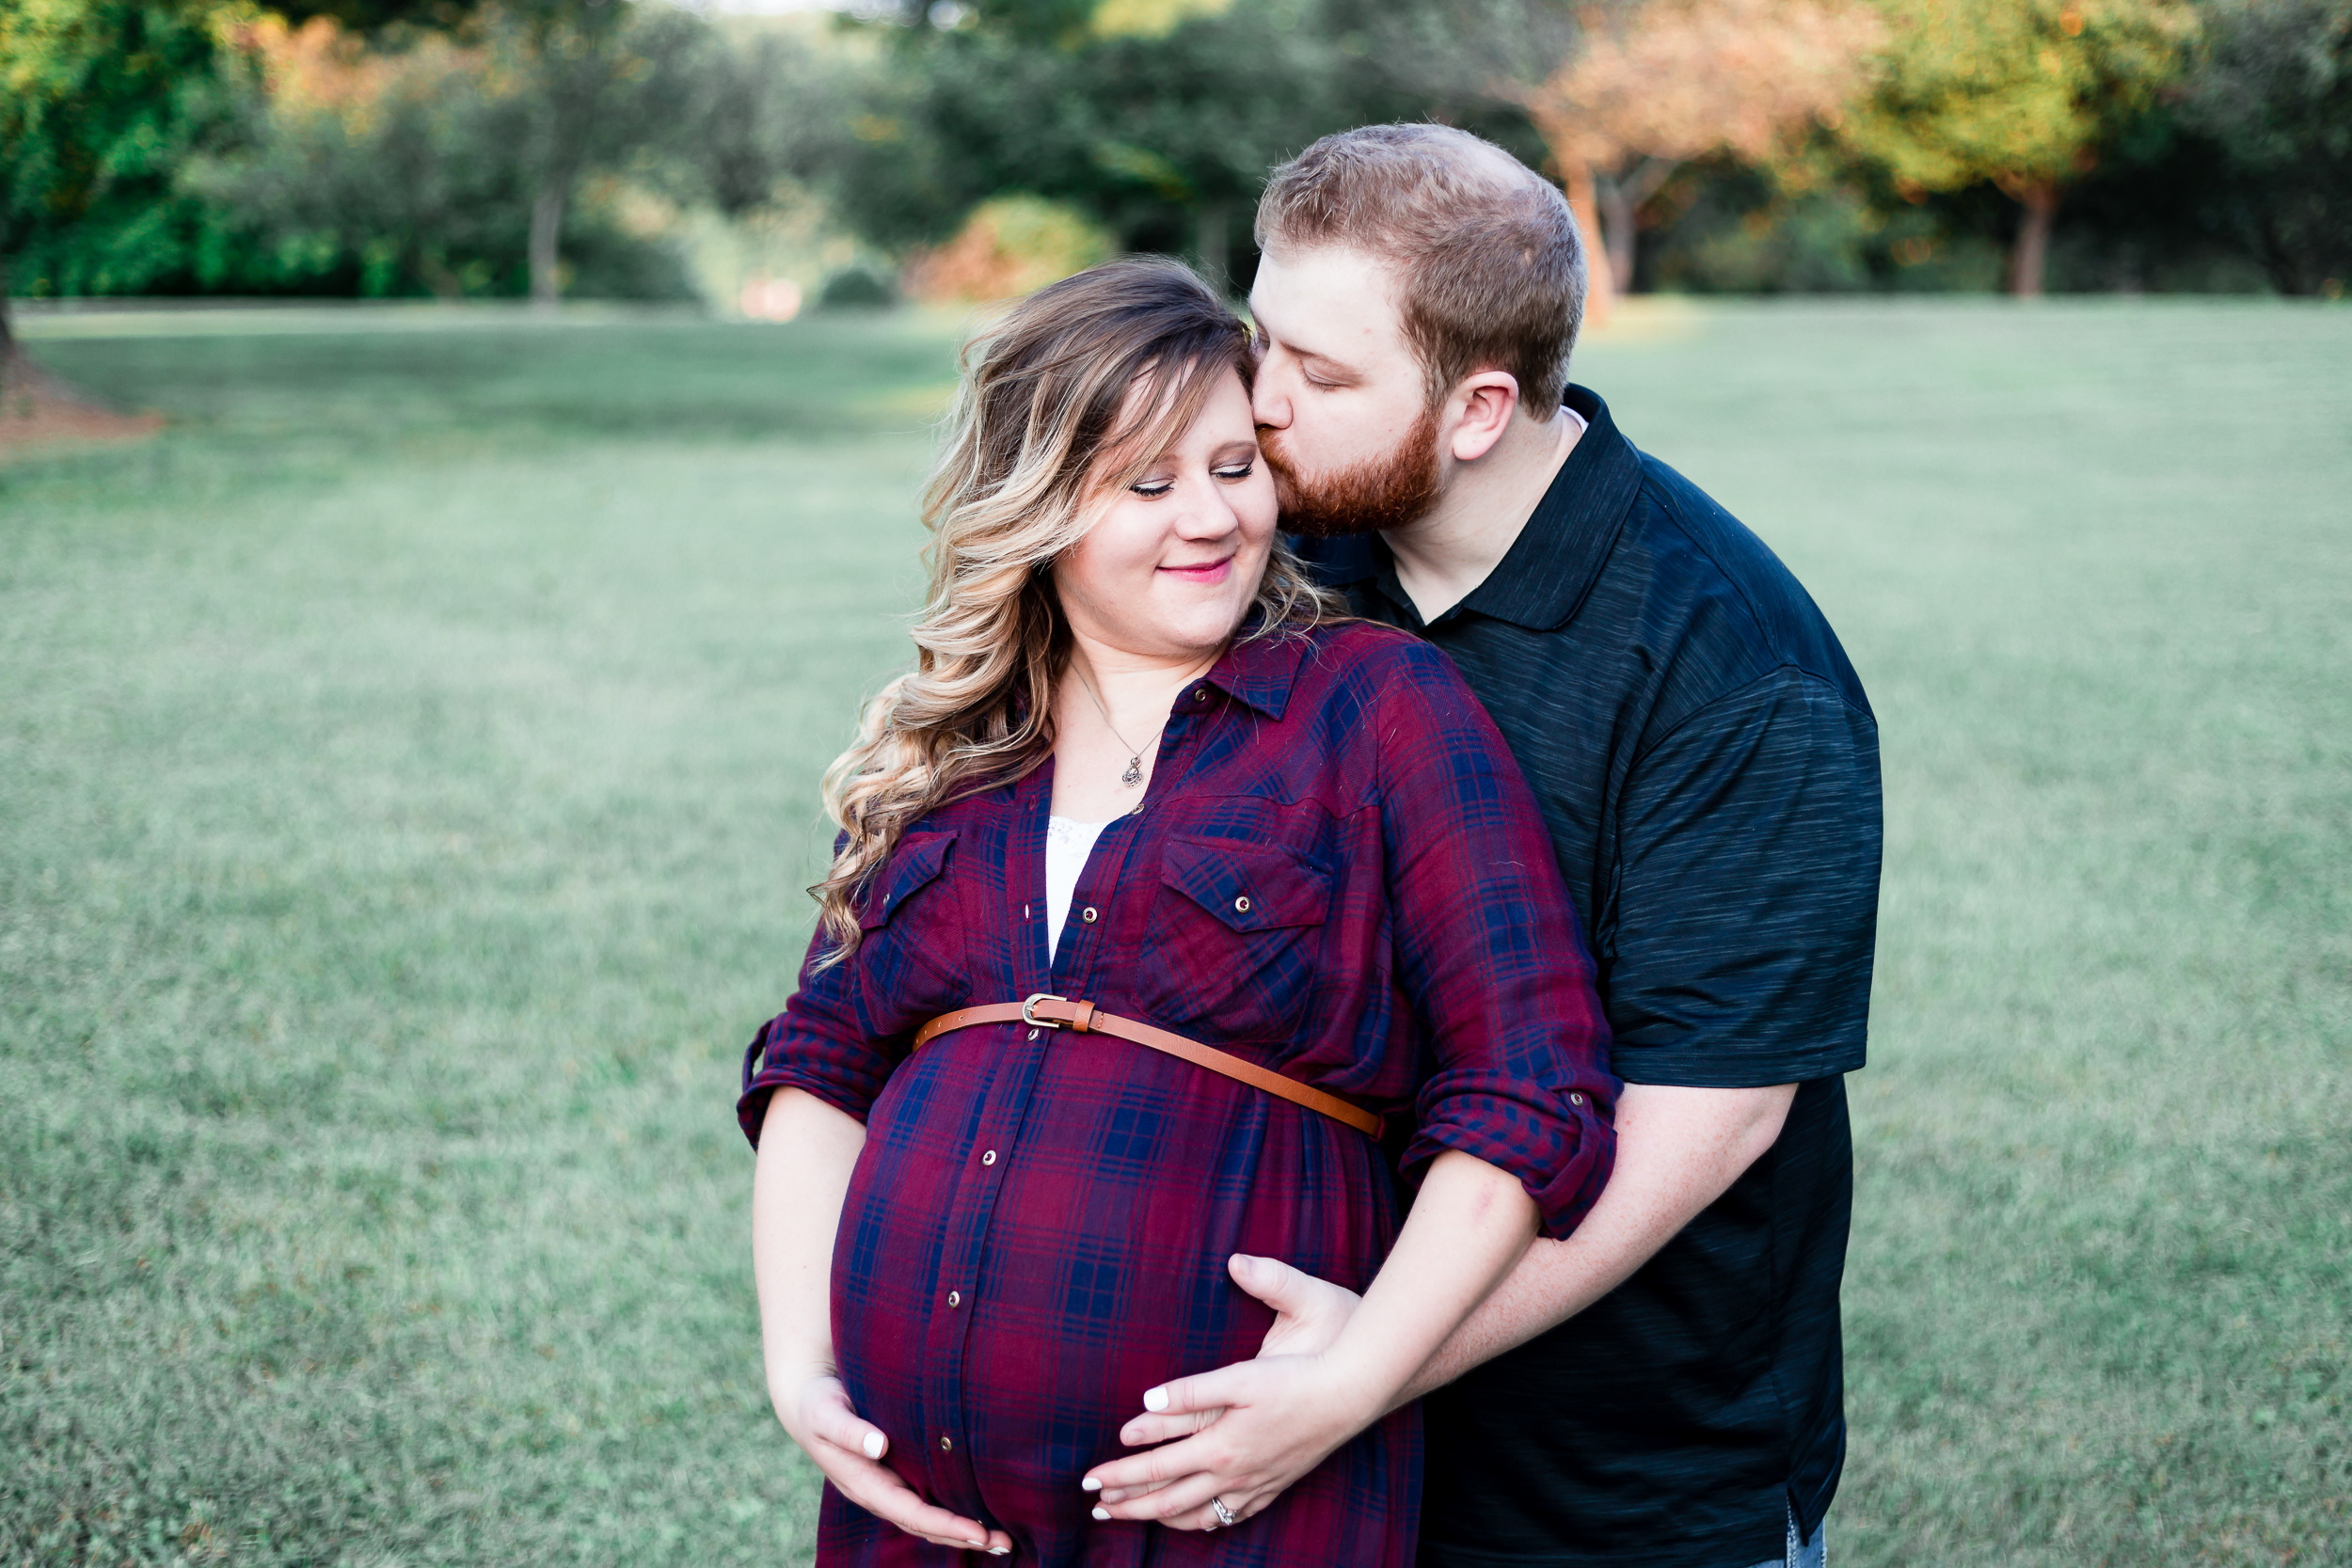 mmw-lynchburg-maternity-photo-session-10.jpg